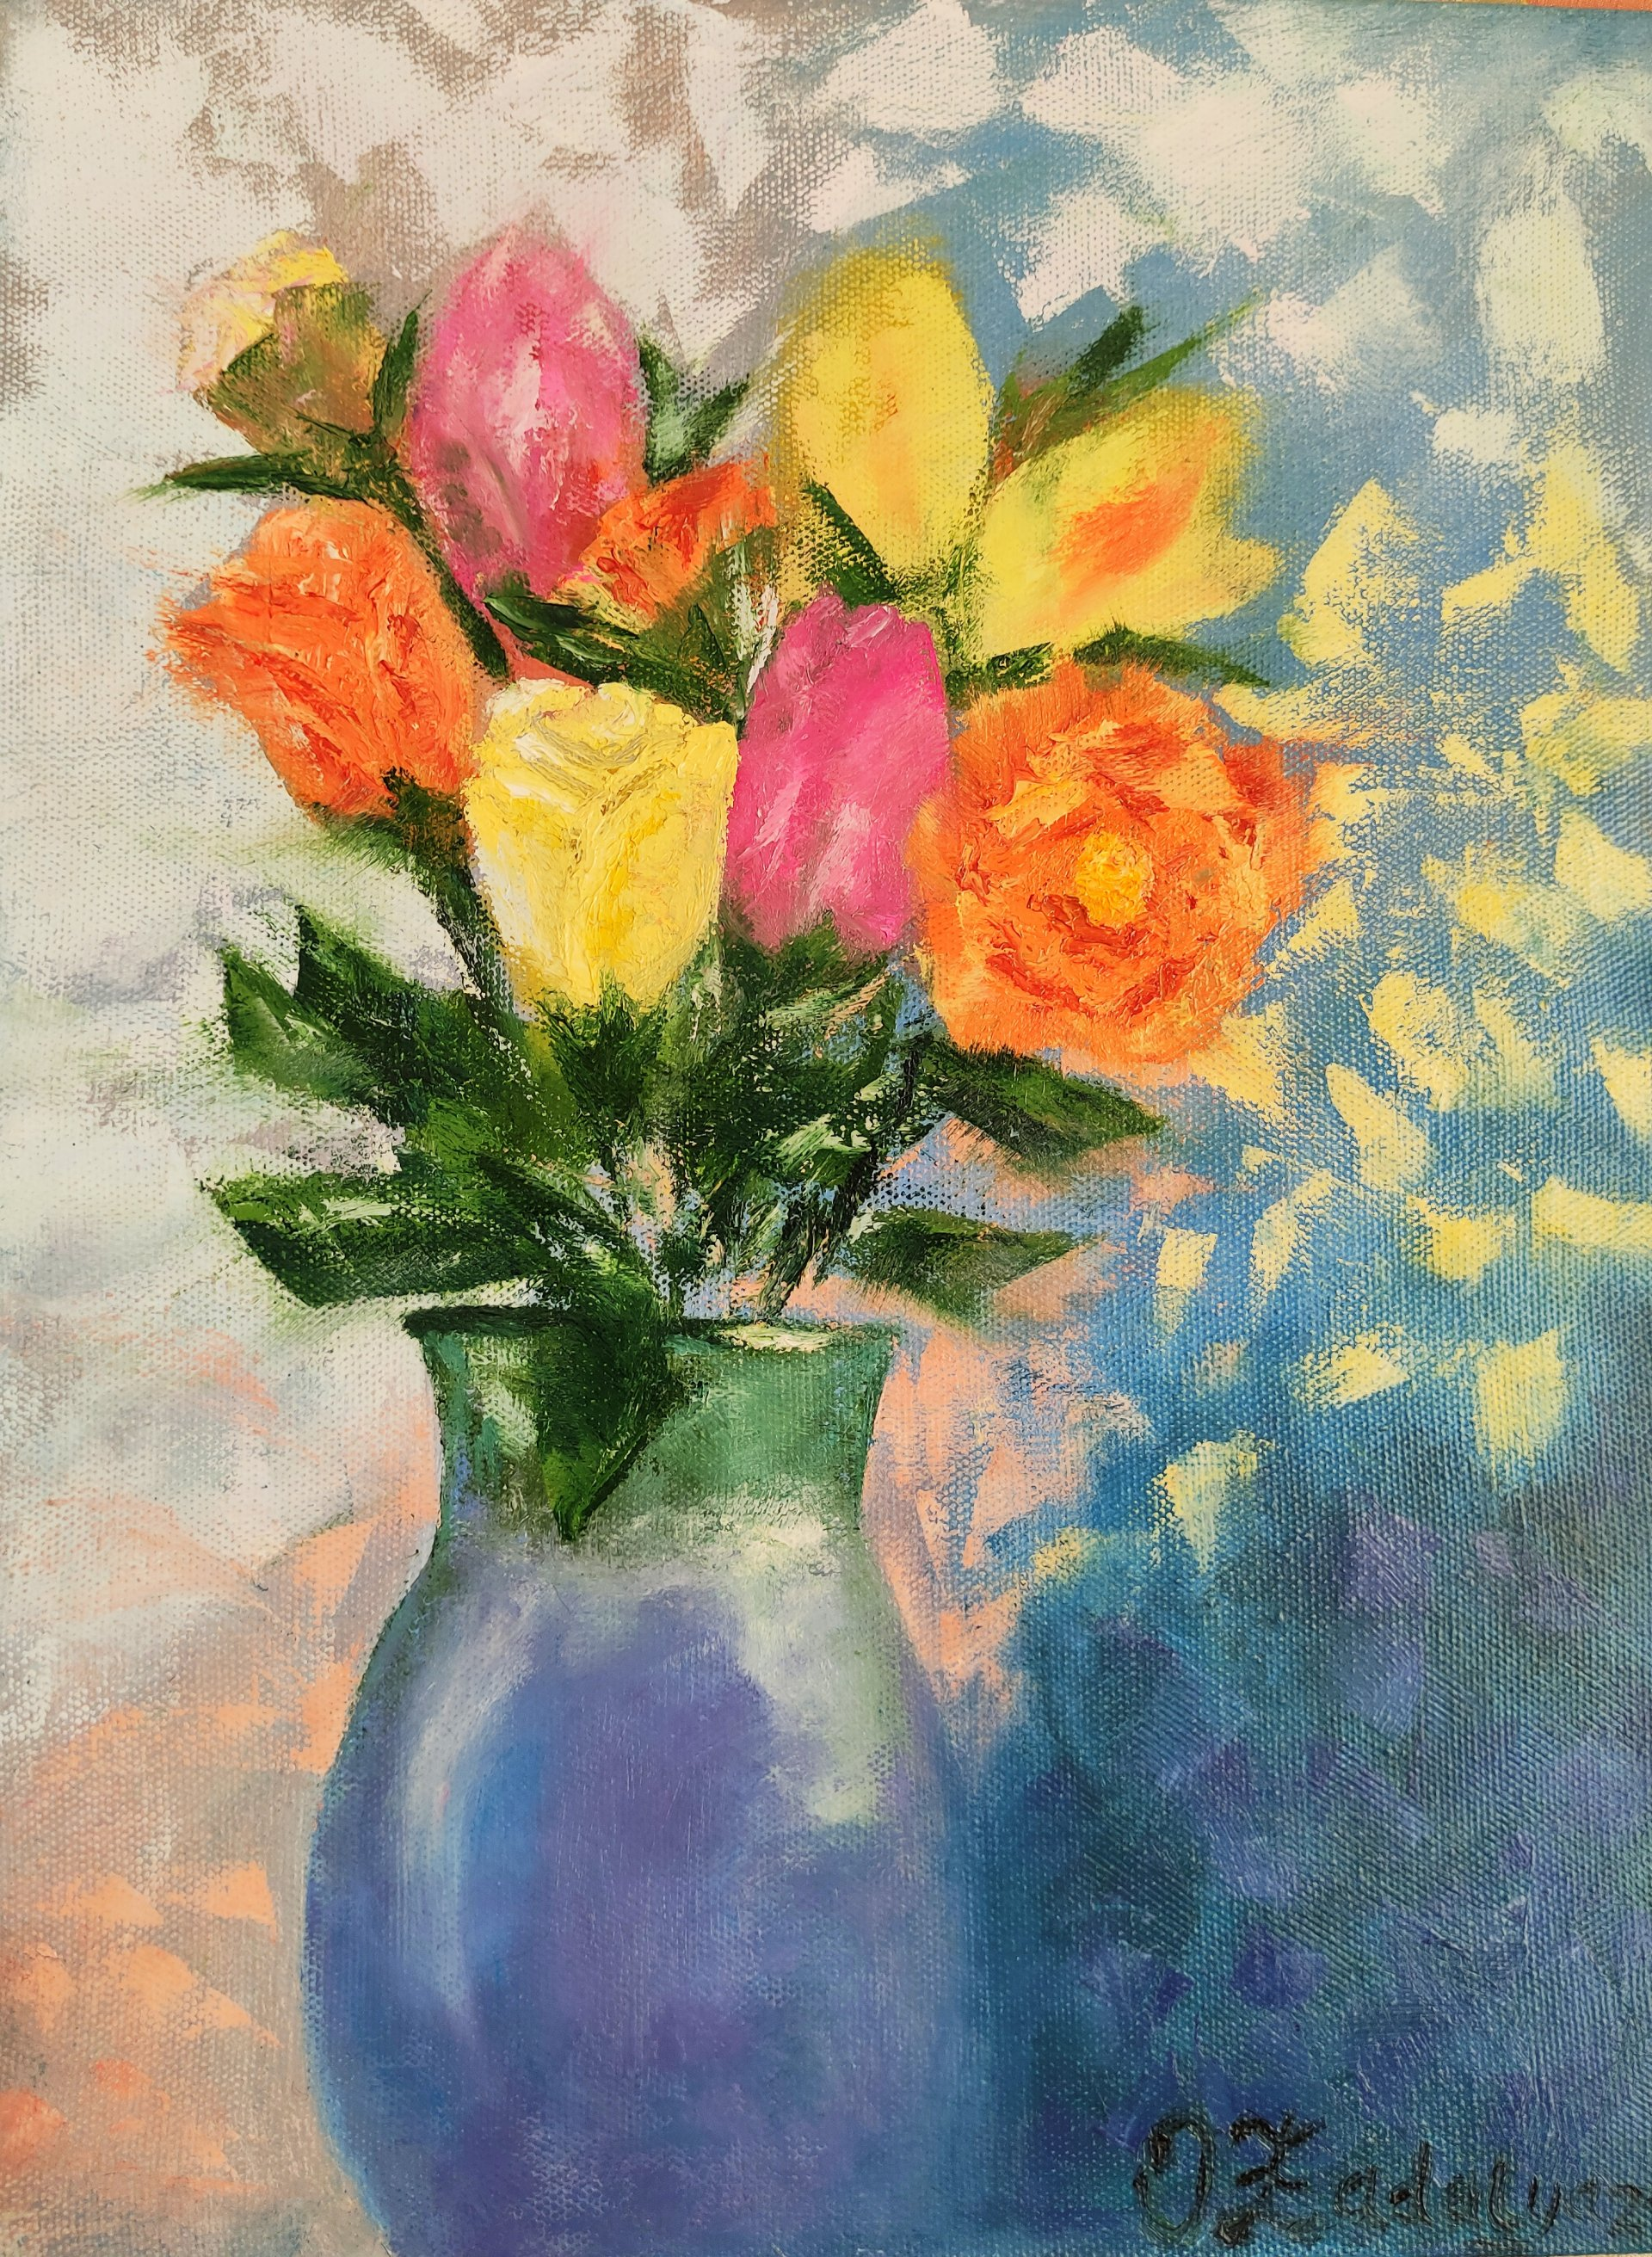 Bouquet on March 8